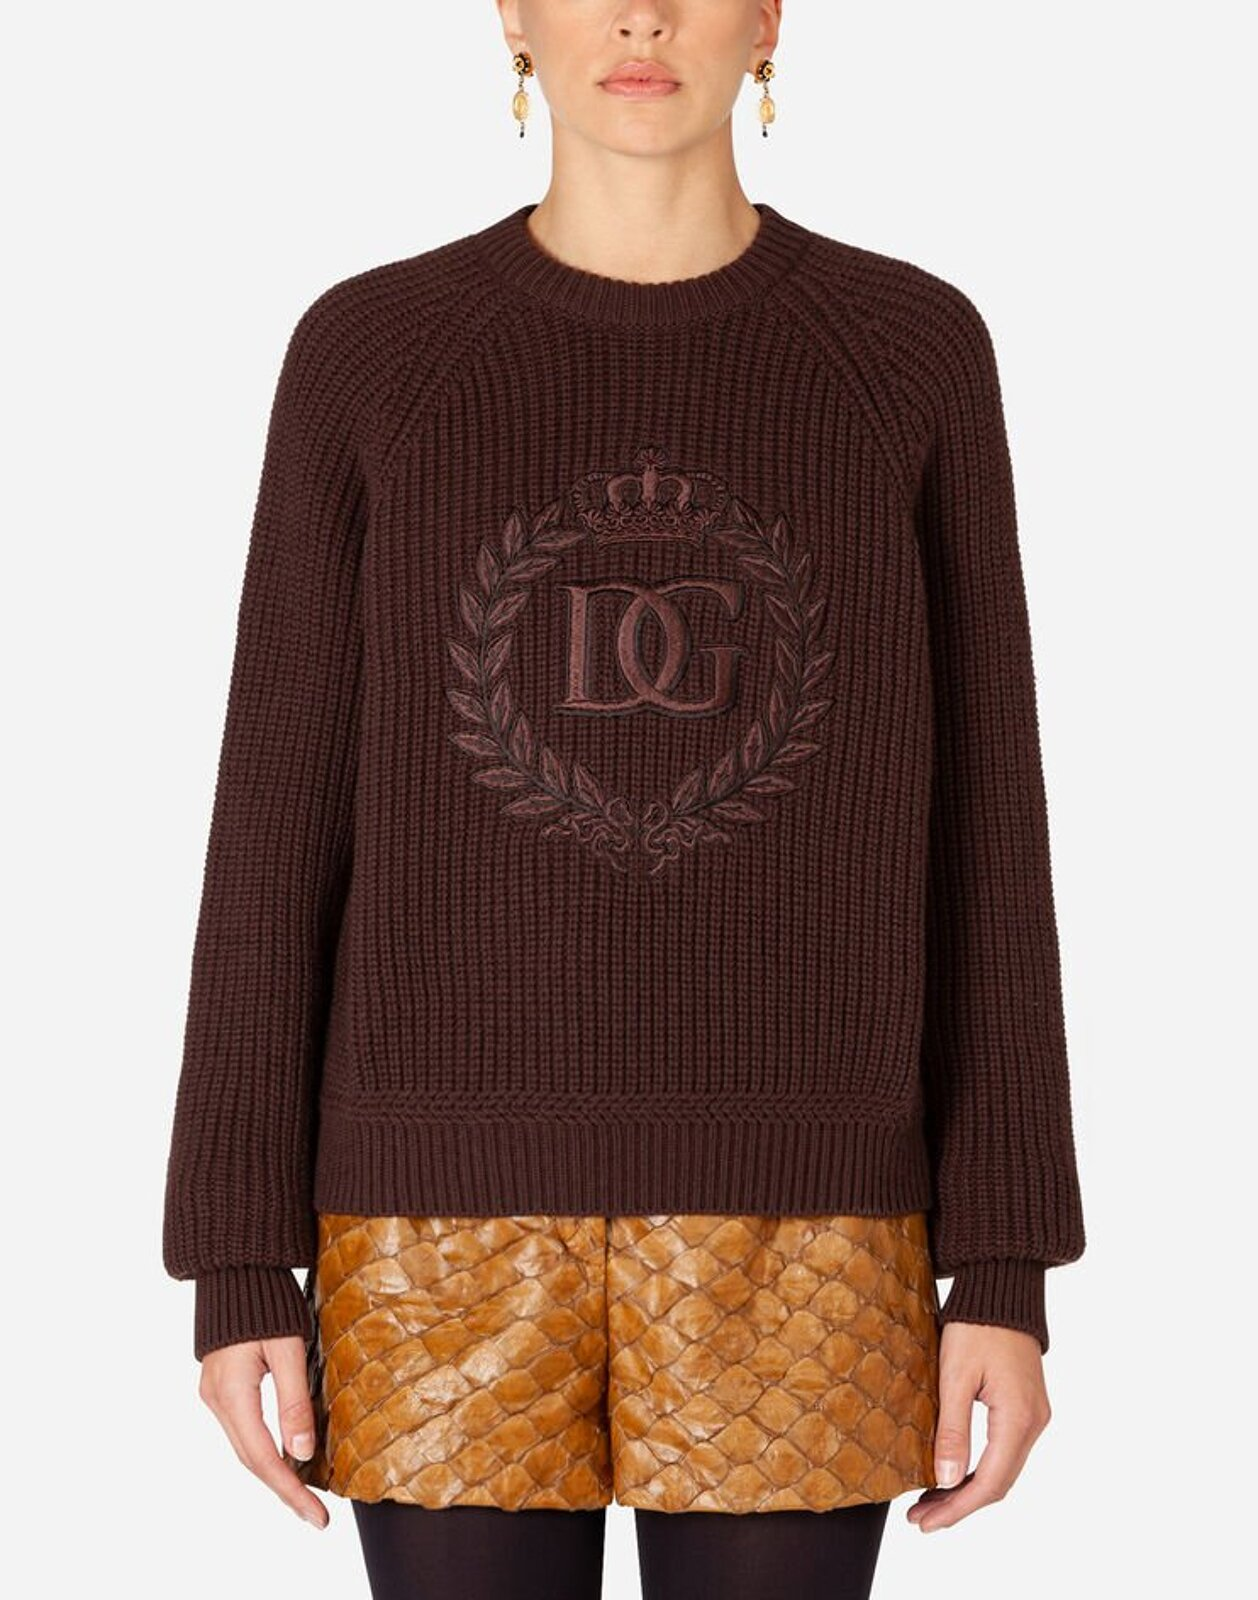 High Neck Ribbed Cashmere Sweater With Embroidery - Dolce & Gabbana